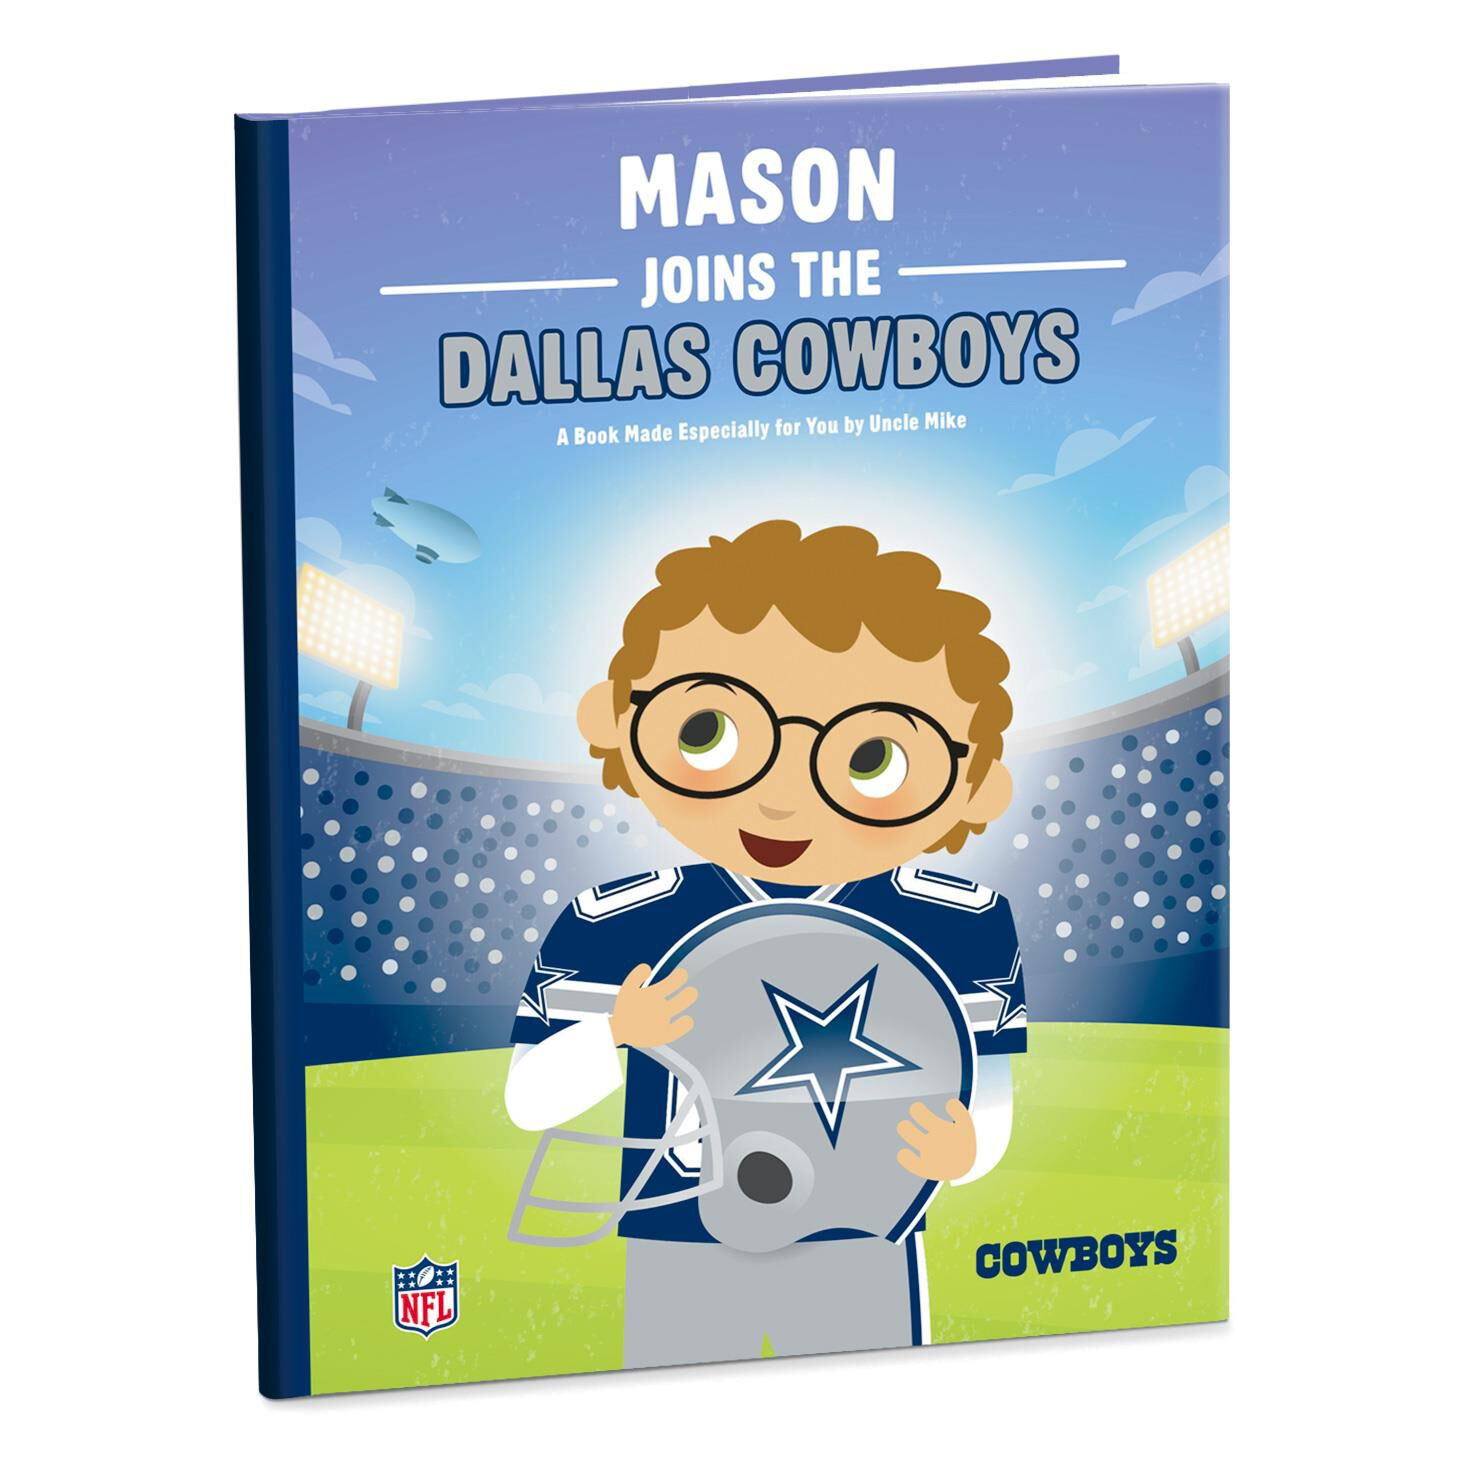 Dallas cowboys nfl football personalized book personalized books dallas cowboys nfl football personalized book personalized books hallmark kristyandbryce Choice Image